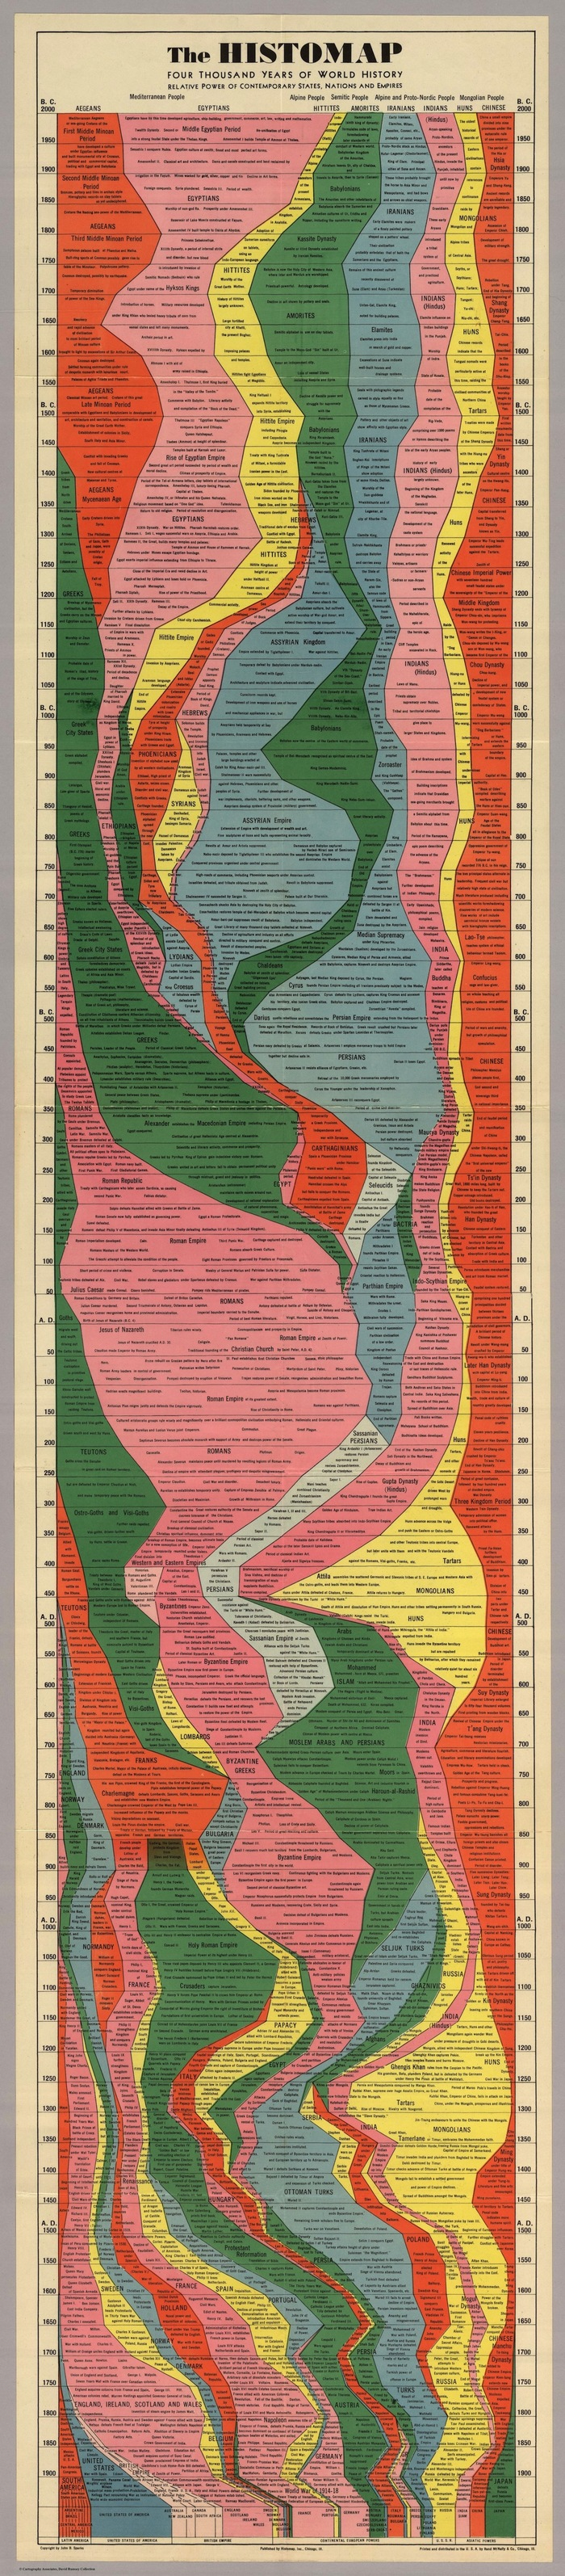 The Histomap: Four Thousand Years Of World History 1